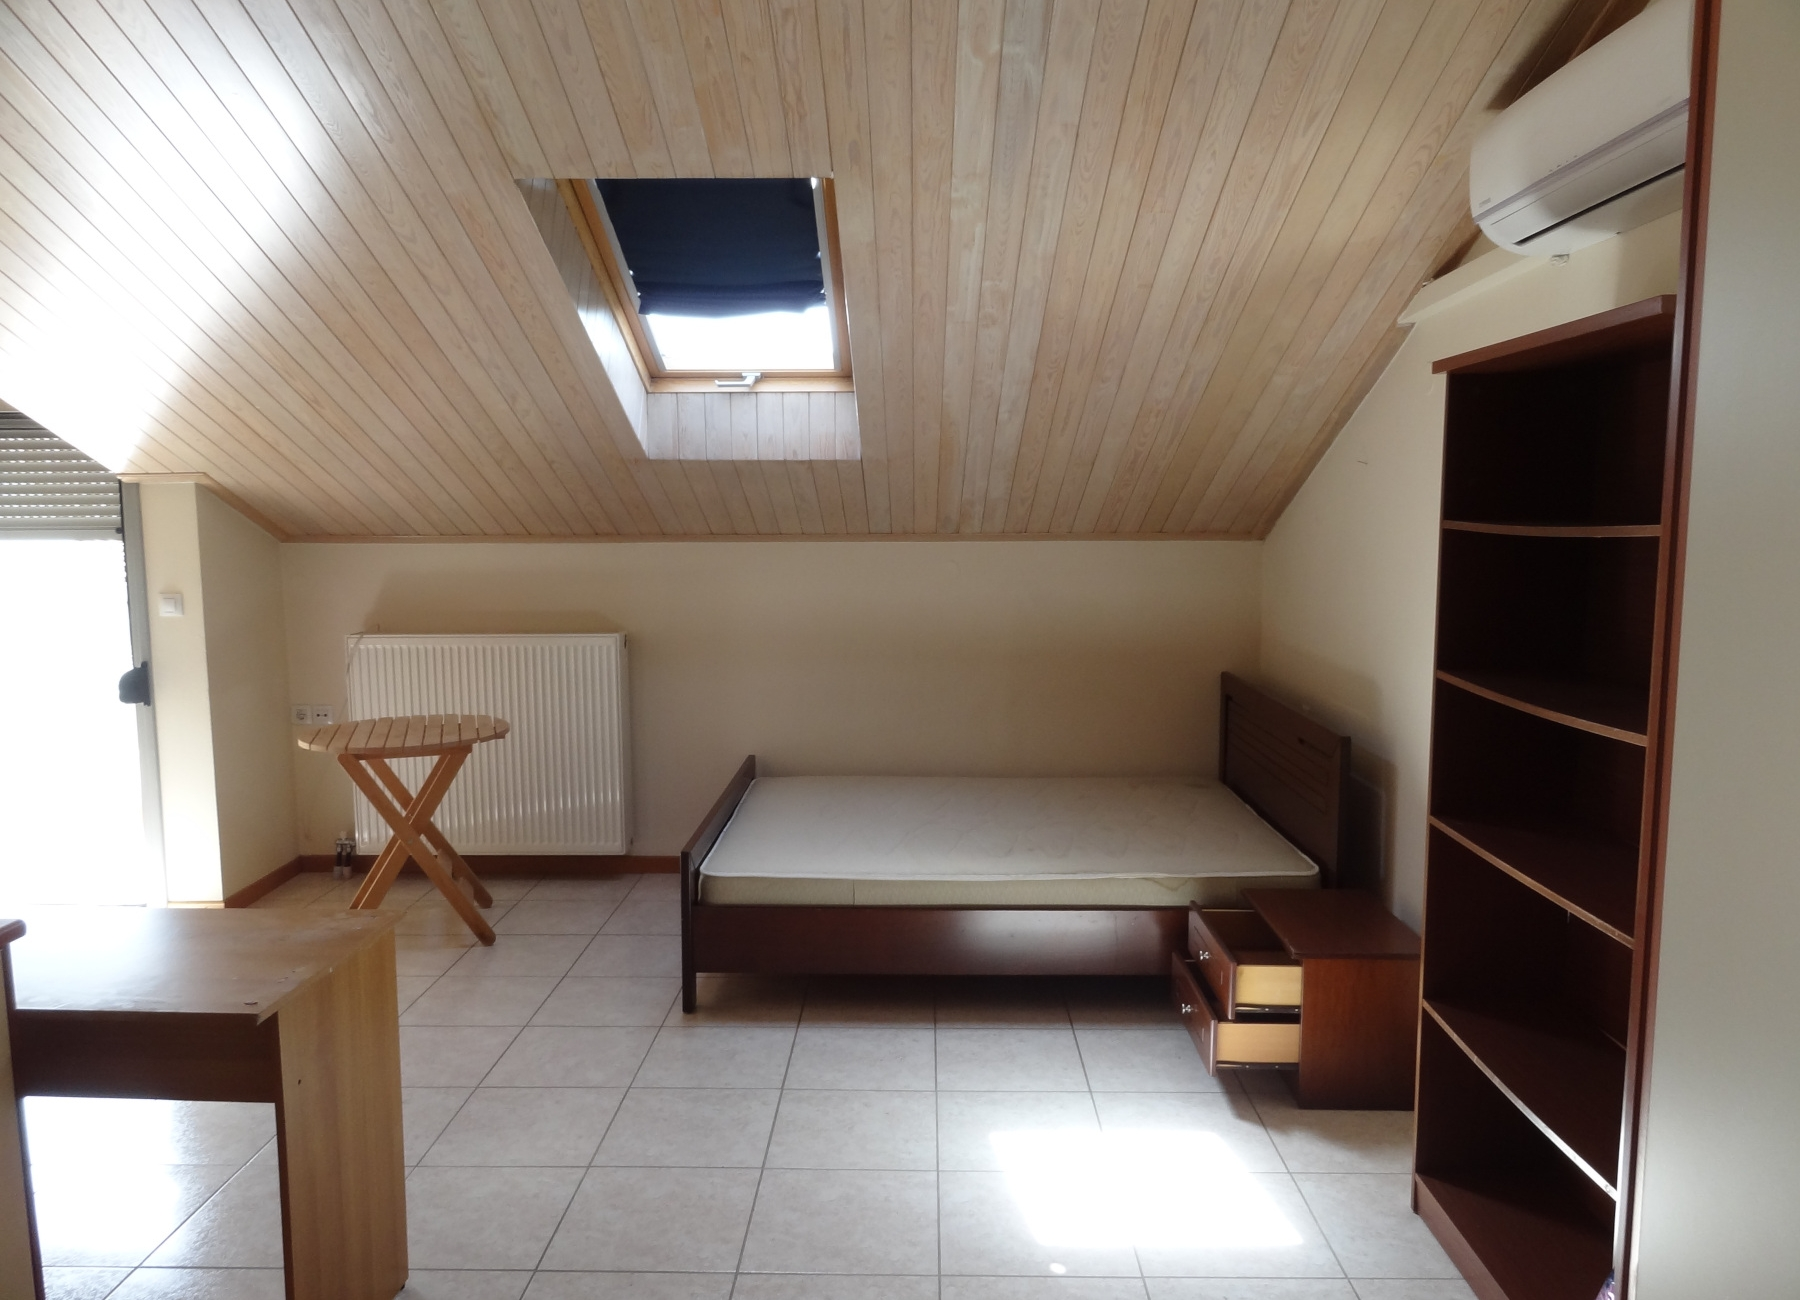 For rent furnished studio of 35 sq.m. 2nd floor attic in the Seismoplikta of Ioannina near the church of Agios Pavlos